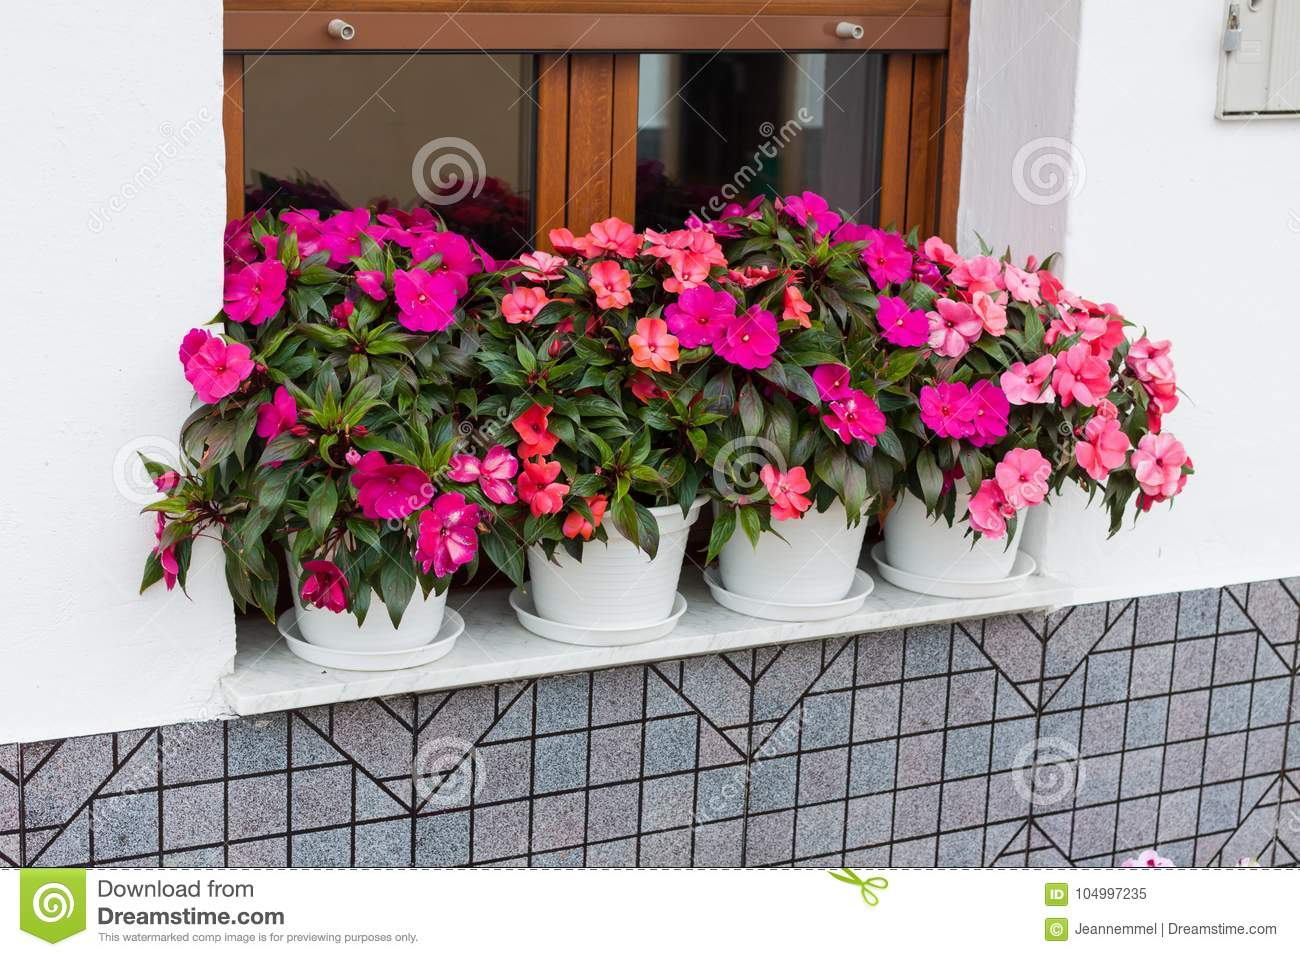 348 Guinea Impatiens New Photos Free Royalty Free Stock Photos From Dreamstime